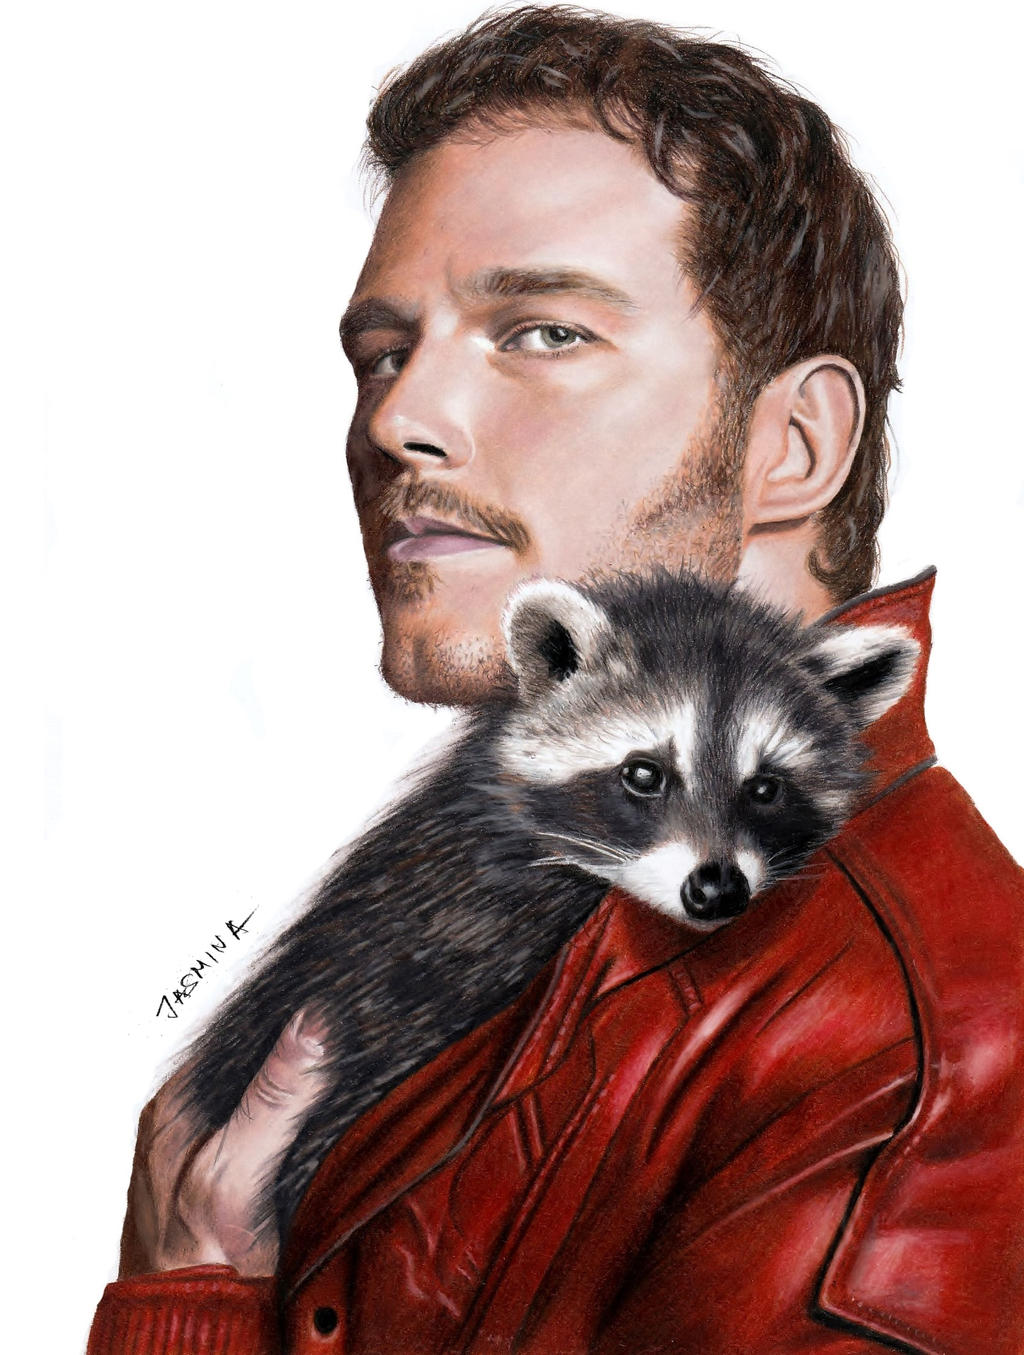 Star Lord And Rocket Raccoon By Timothygreenii On Deviantart: Drawing Of Chris Pratt As Star-Lord With Raccoon By